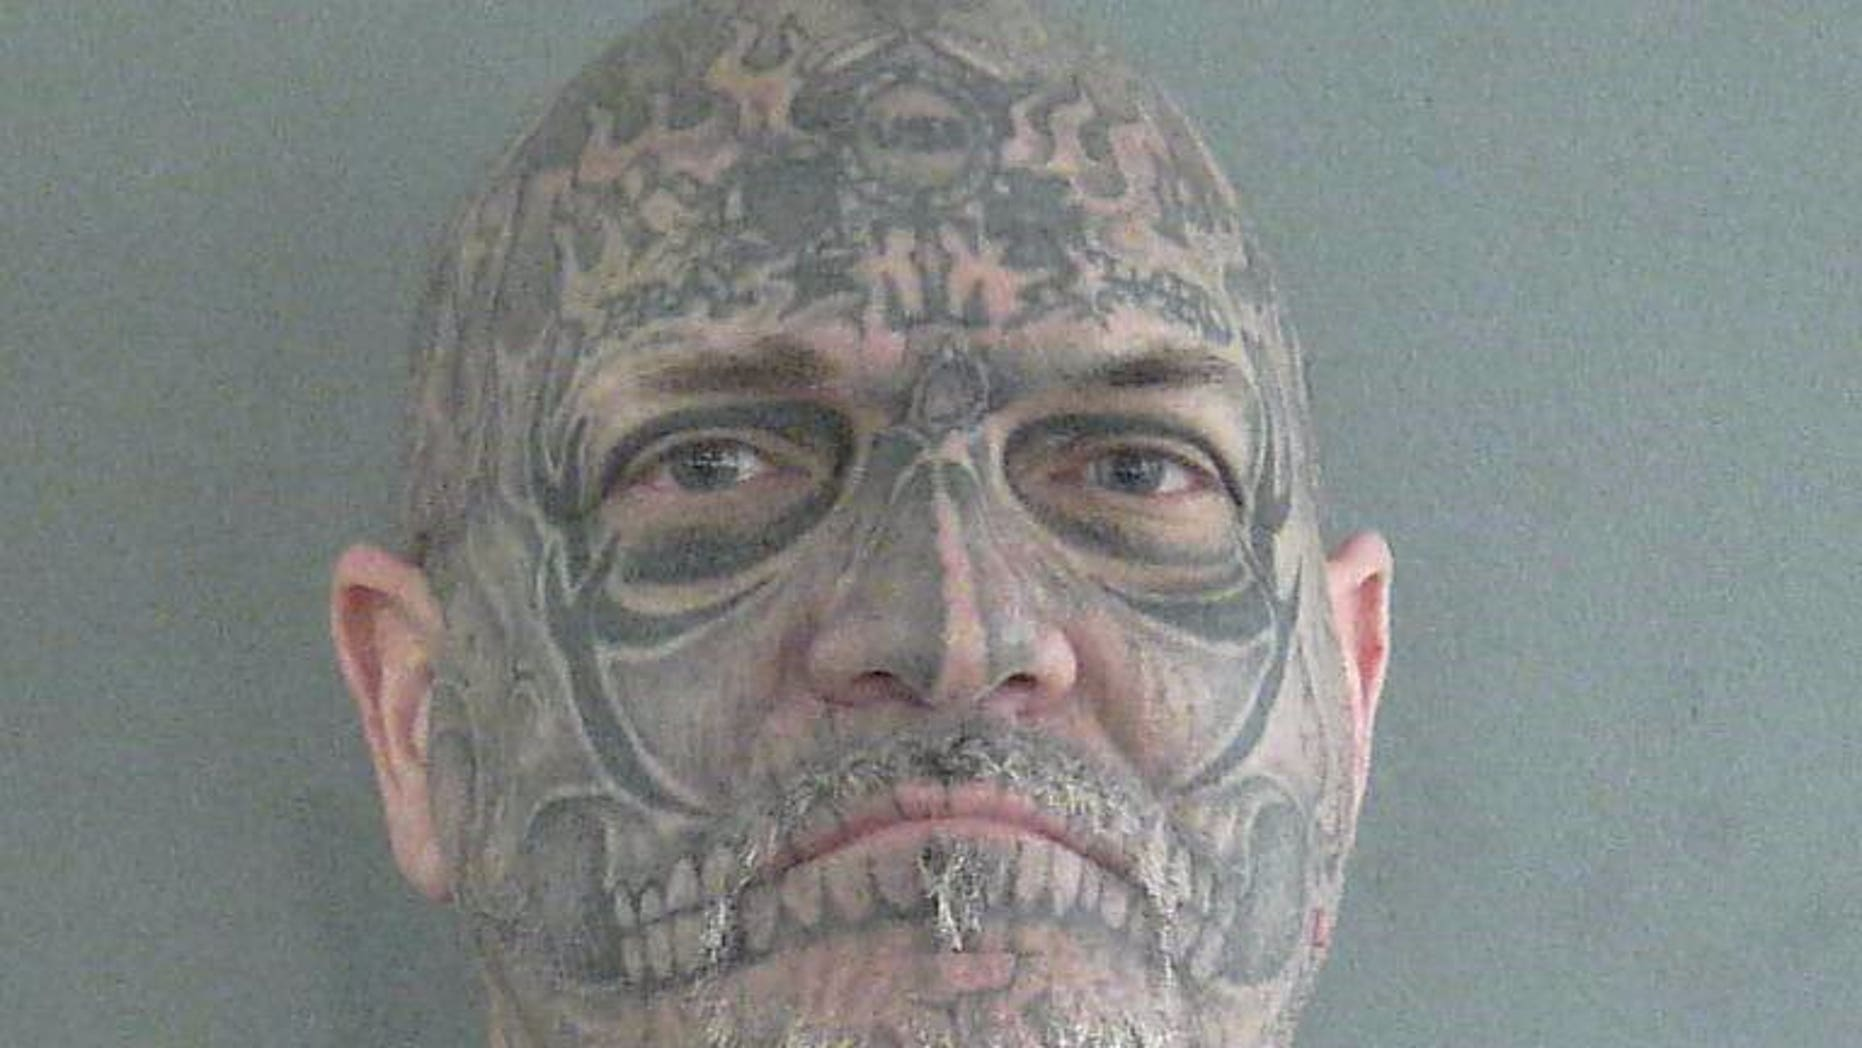 Florida man with tattoo-covered face arrested in 2001 cold case murder